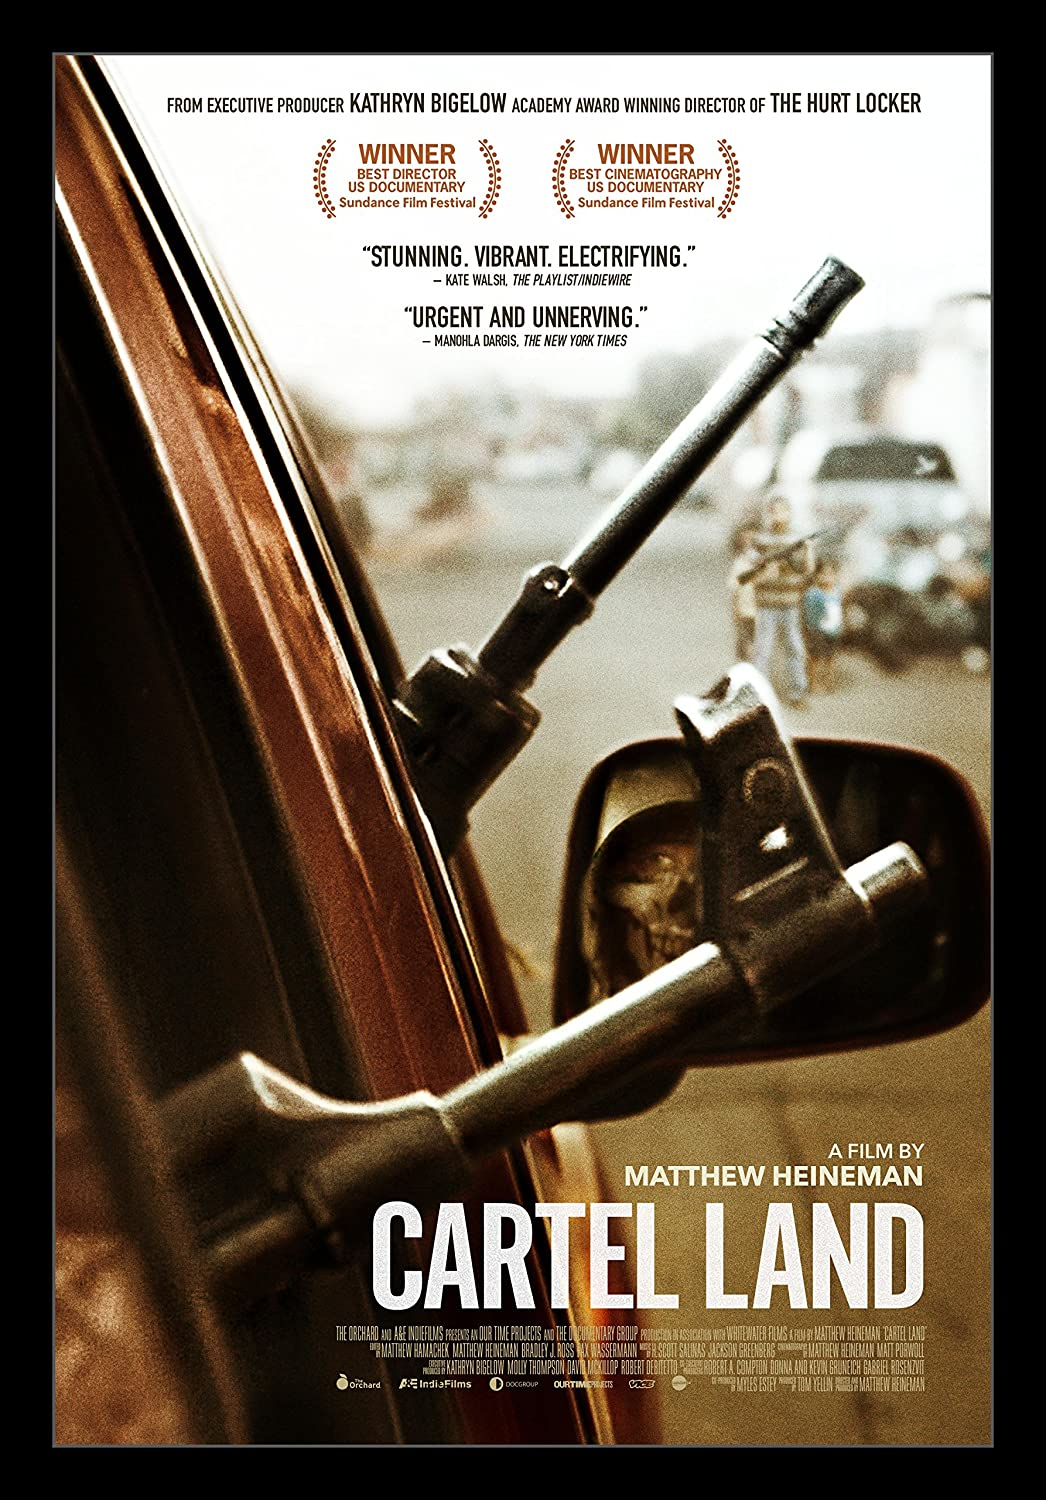 Amazon.com: Cartel Land: Matthew Heineman: Movies & TV